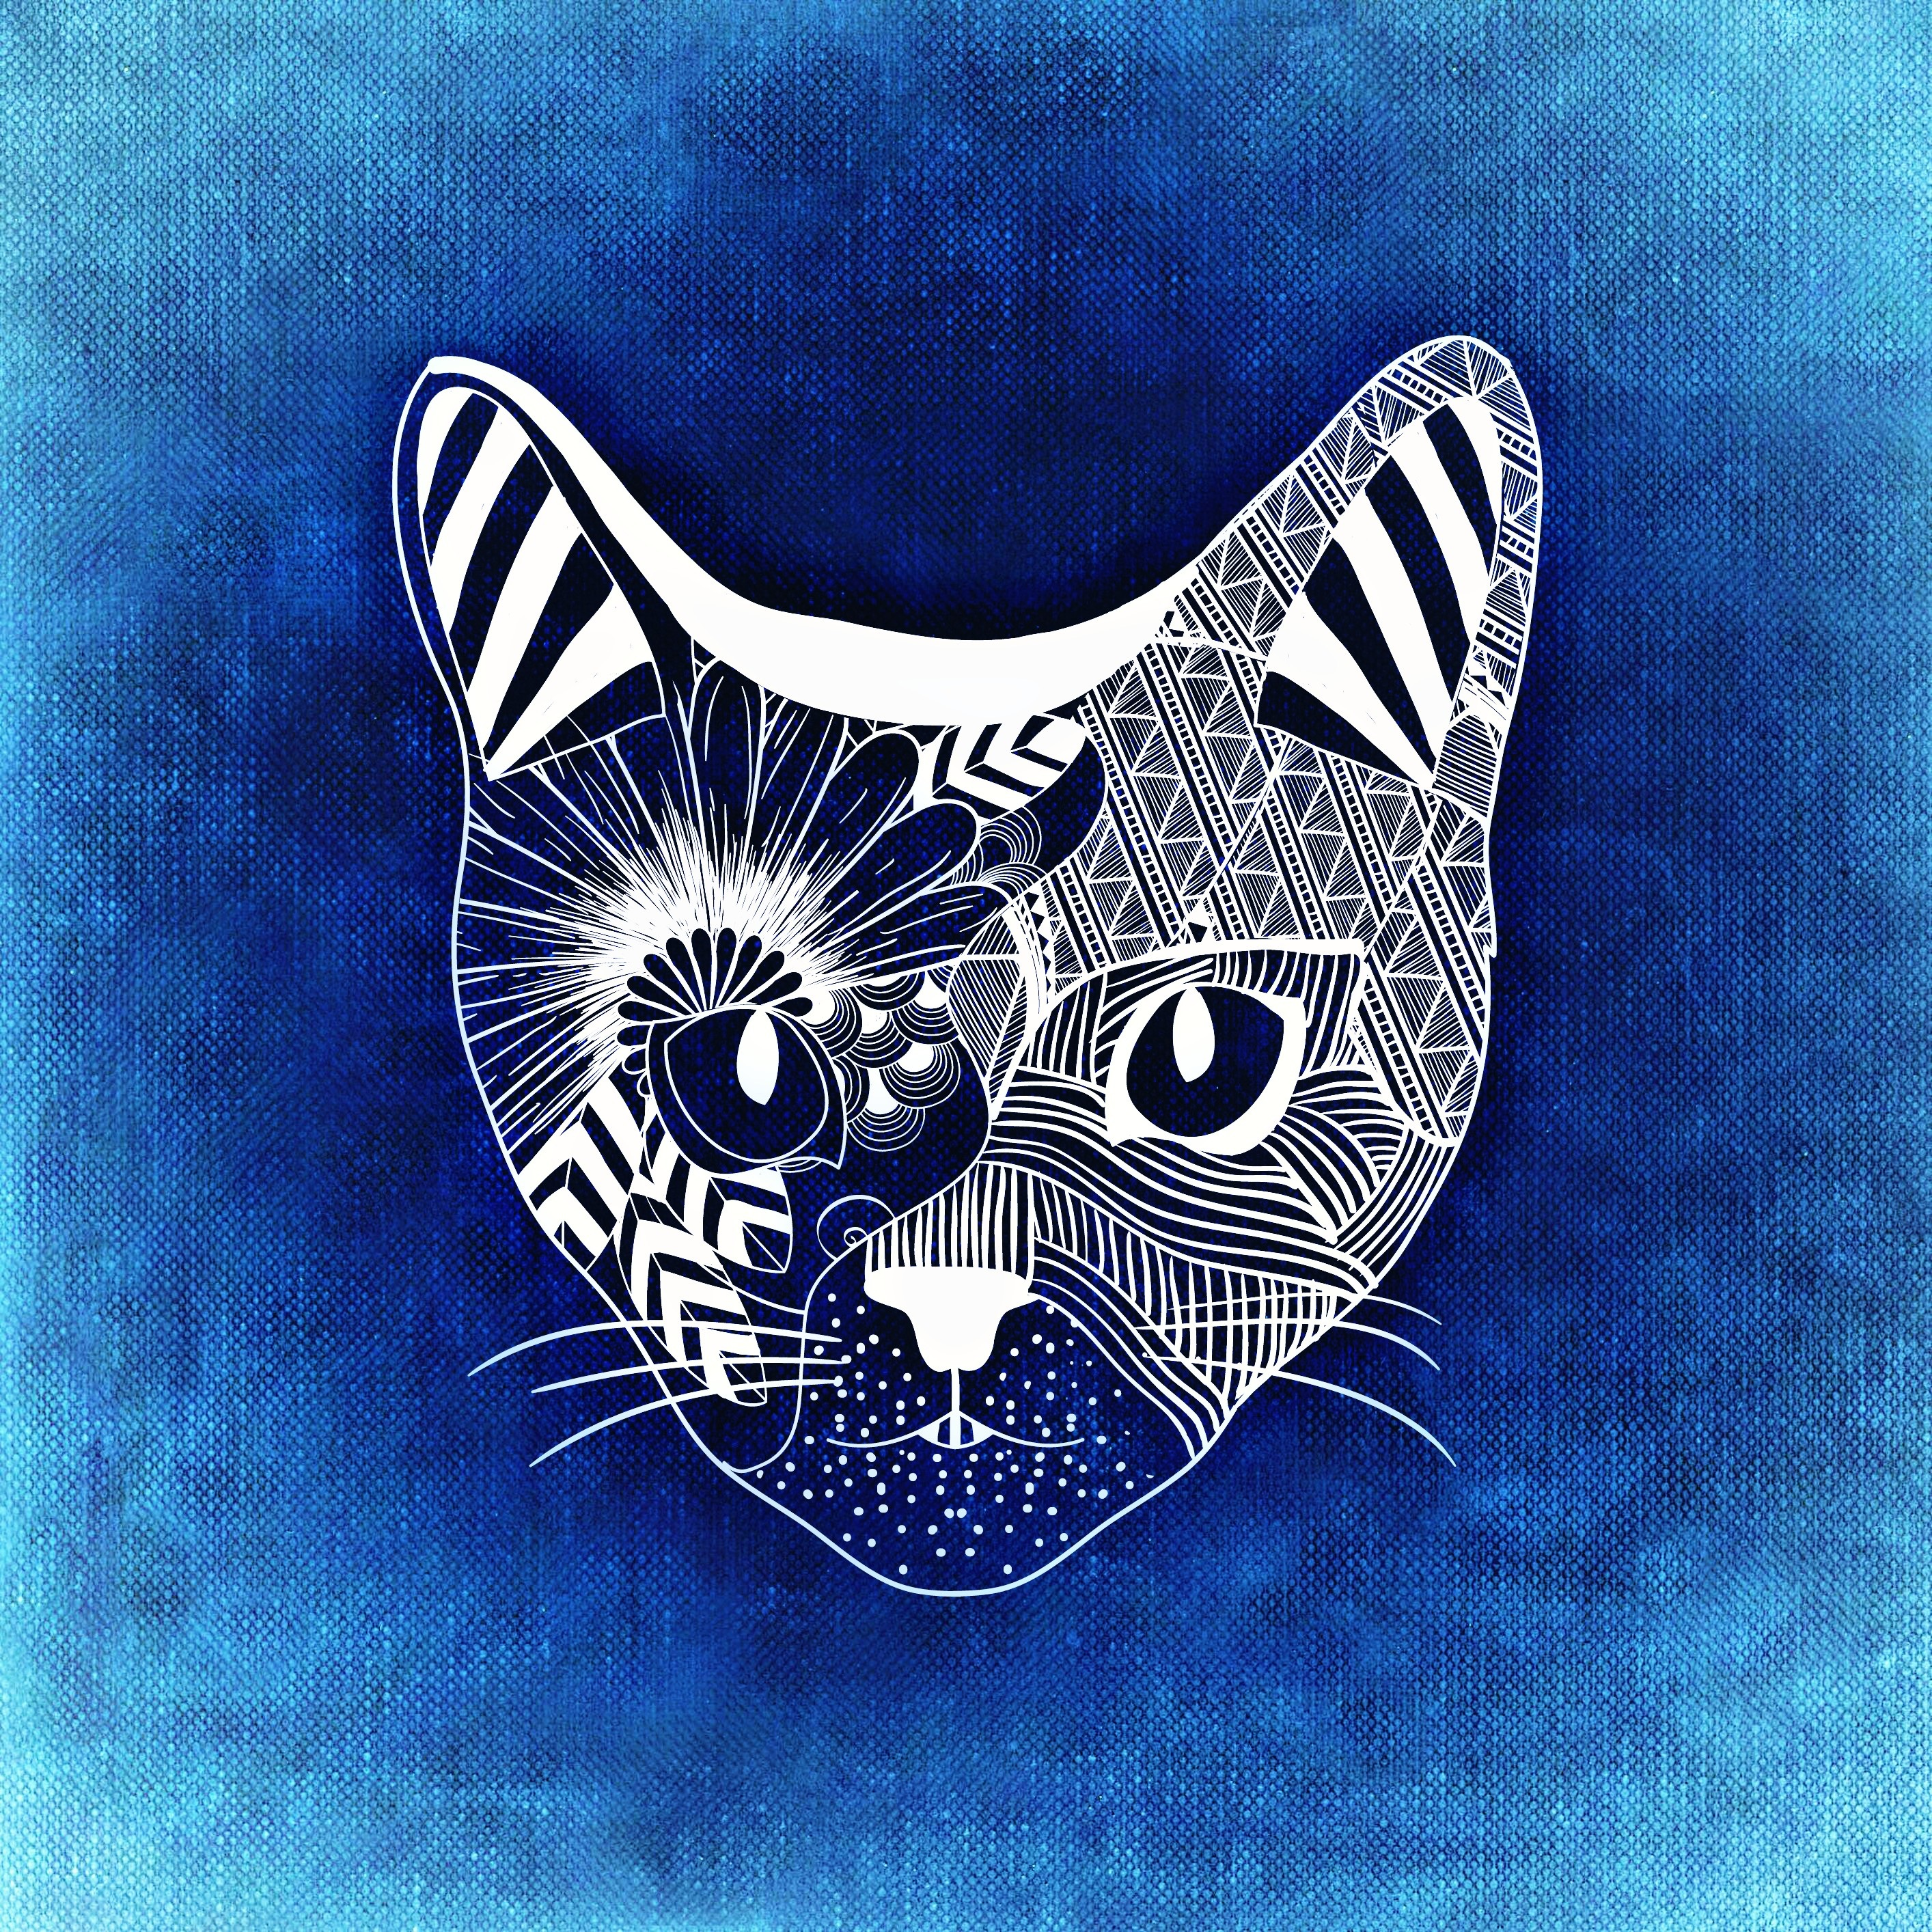 141254 download wallpaper Cat, Art, Muzzle, Patterns screensavers and pictures for free